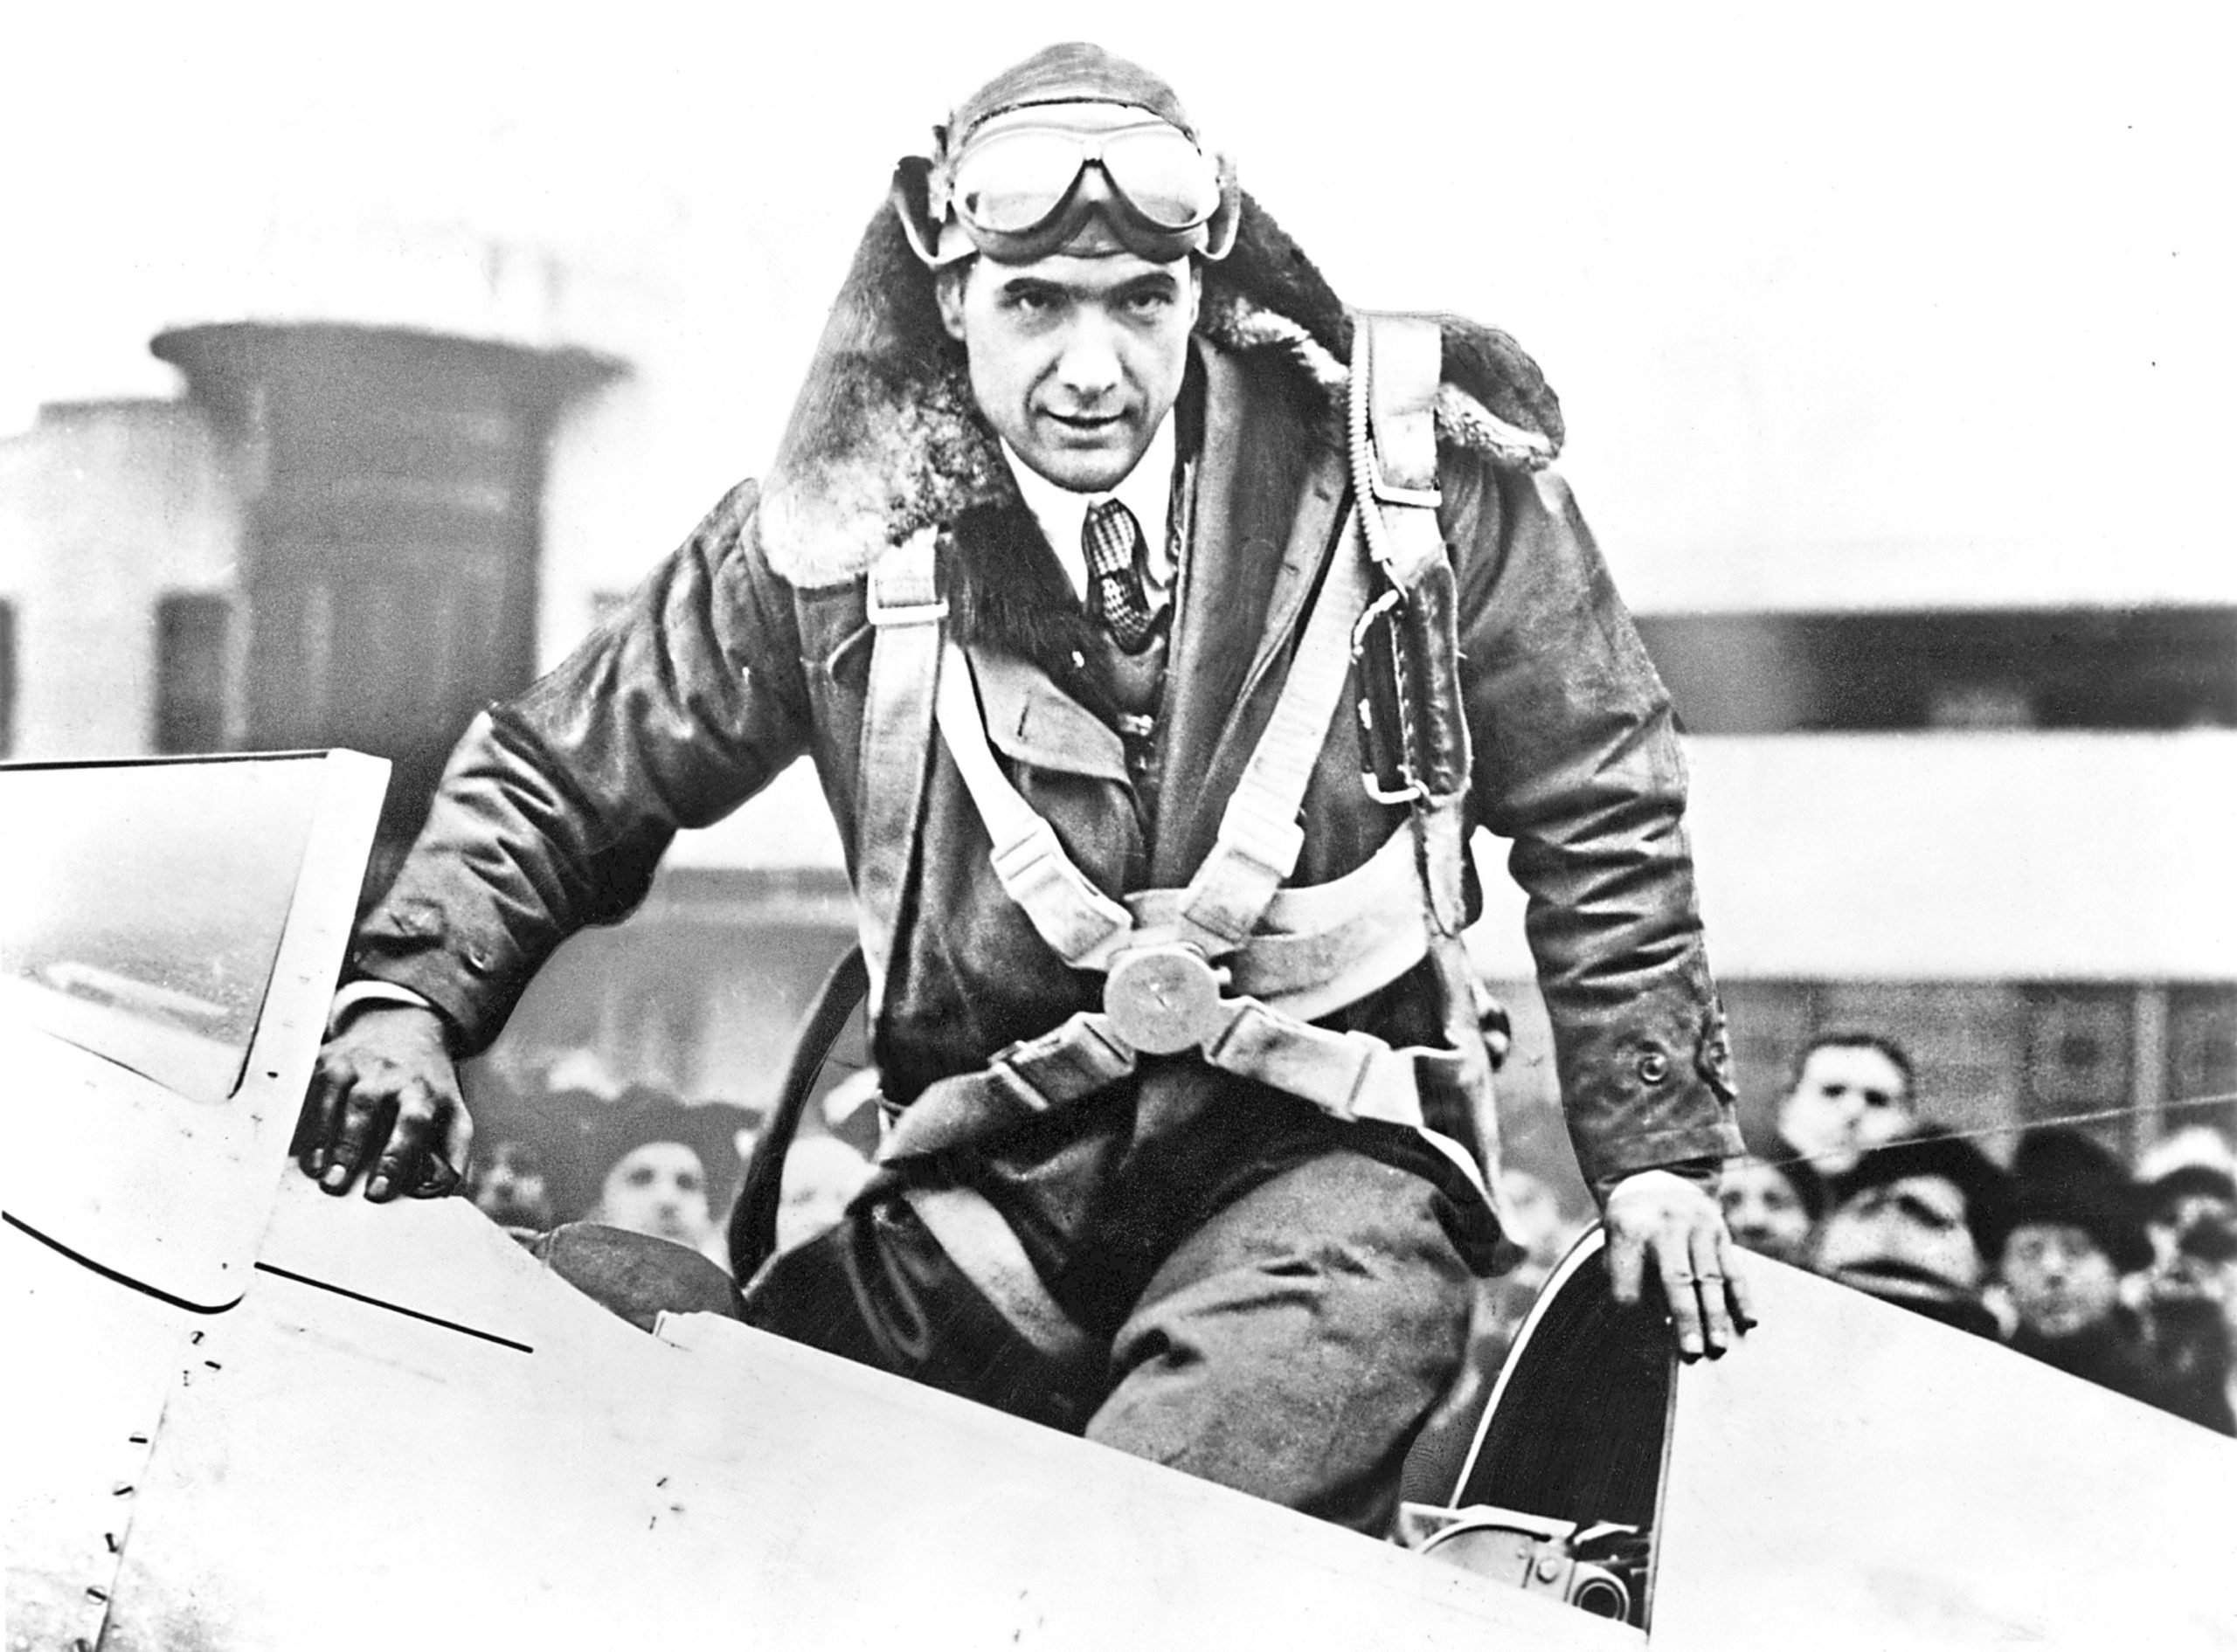 Hughes emerging from an airplane cockpit at Newark Airport